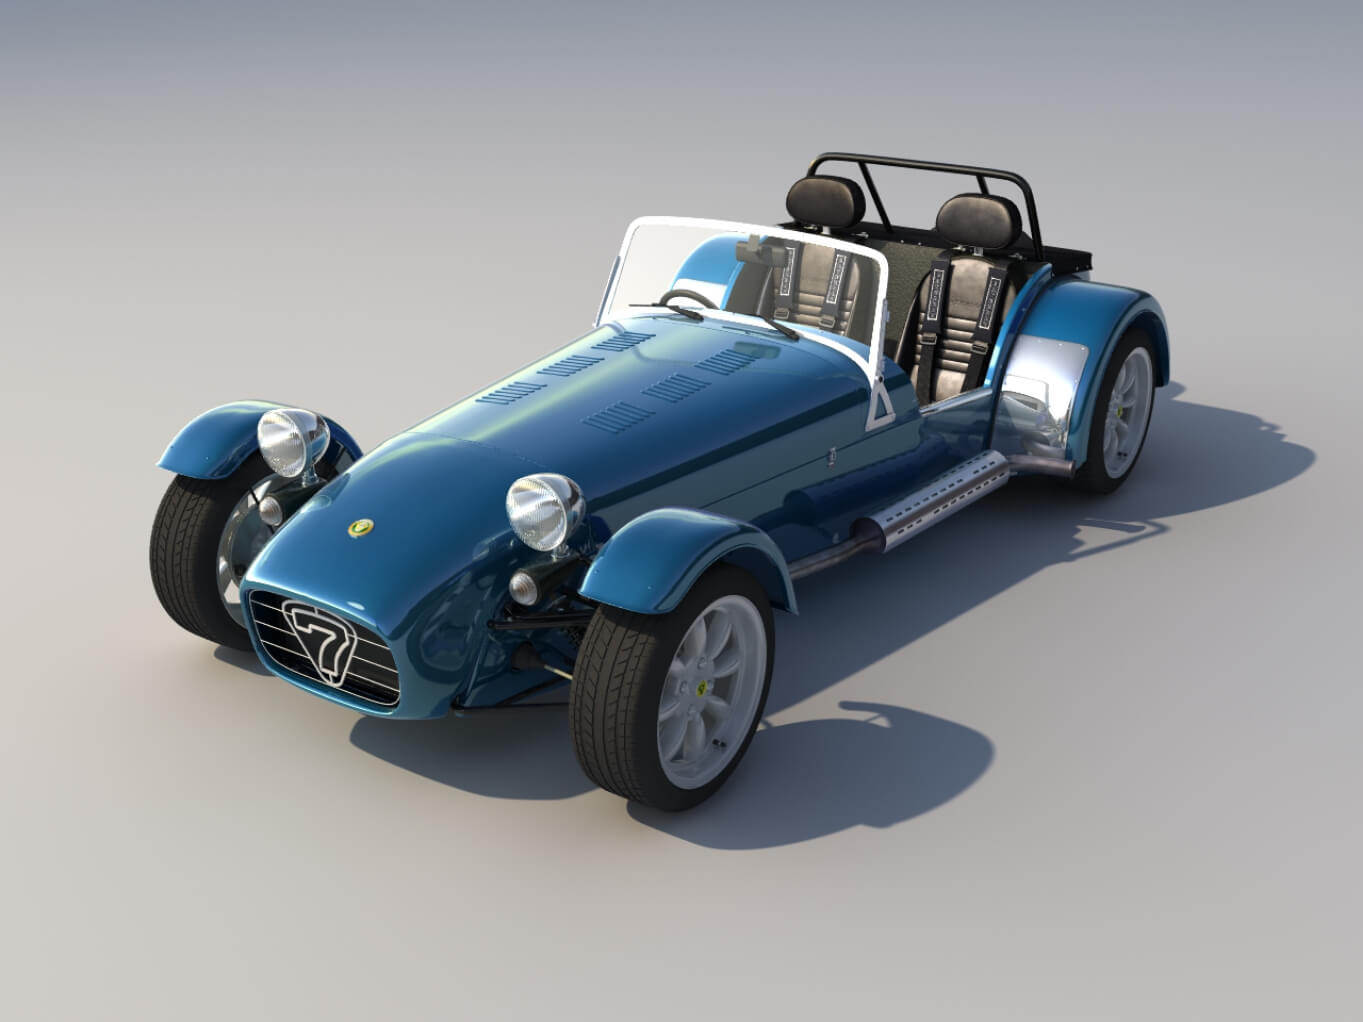 Caterham Car Study